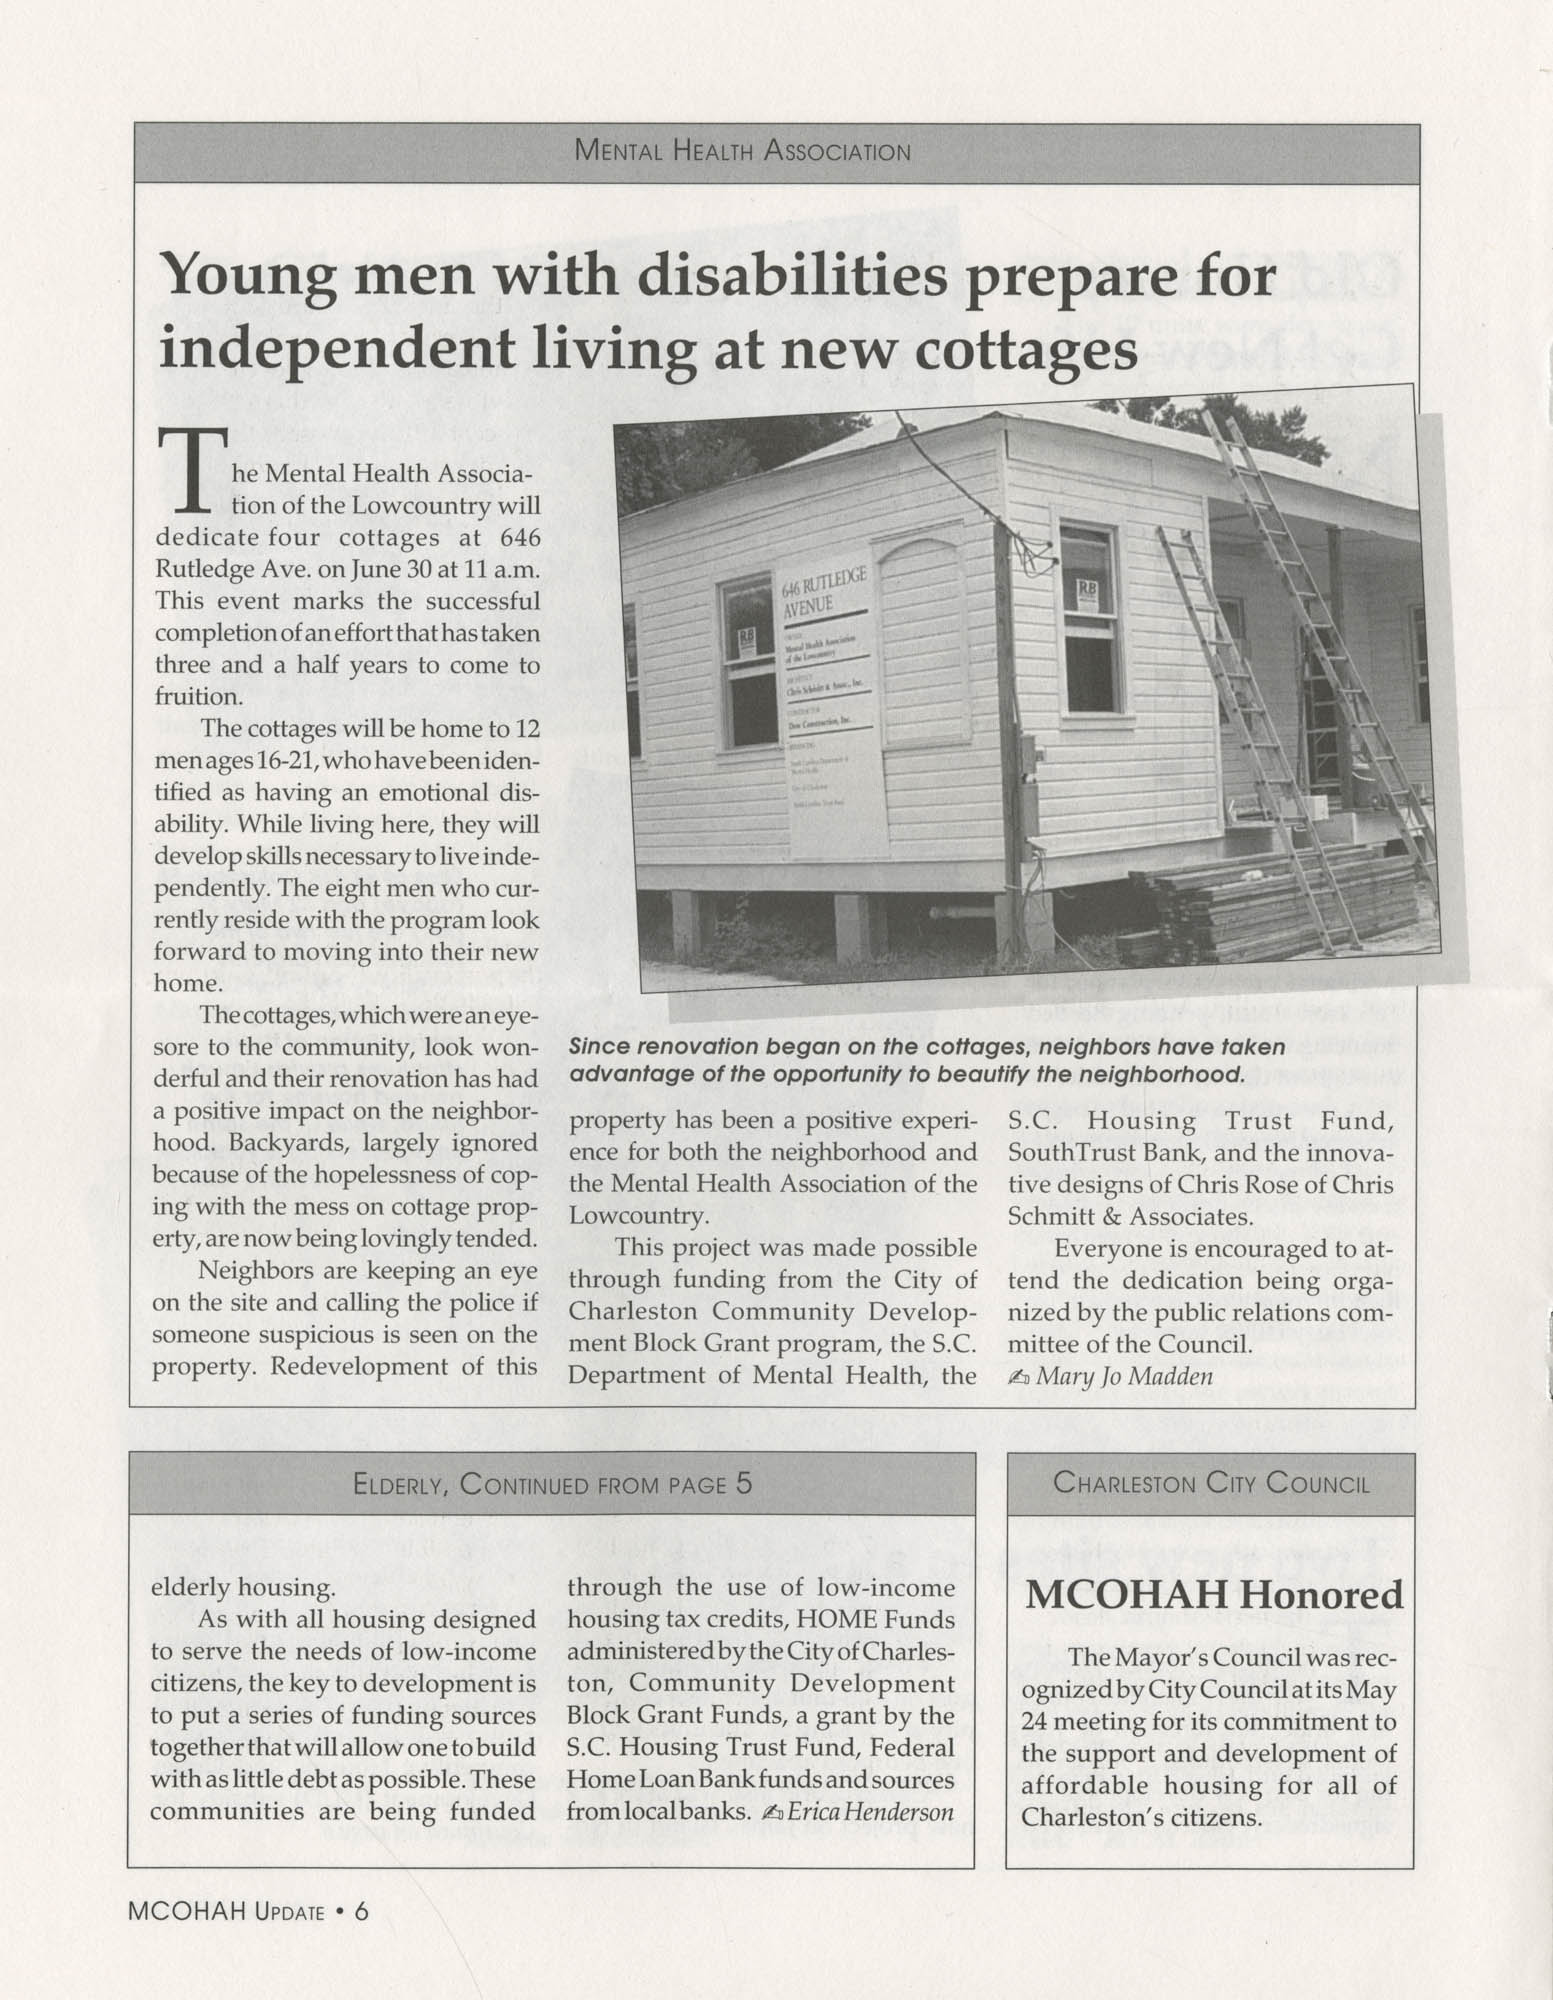 Mayor's Council on Homelessness and Affordable Housing Update Newsletter, Summer 1994, Page 6